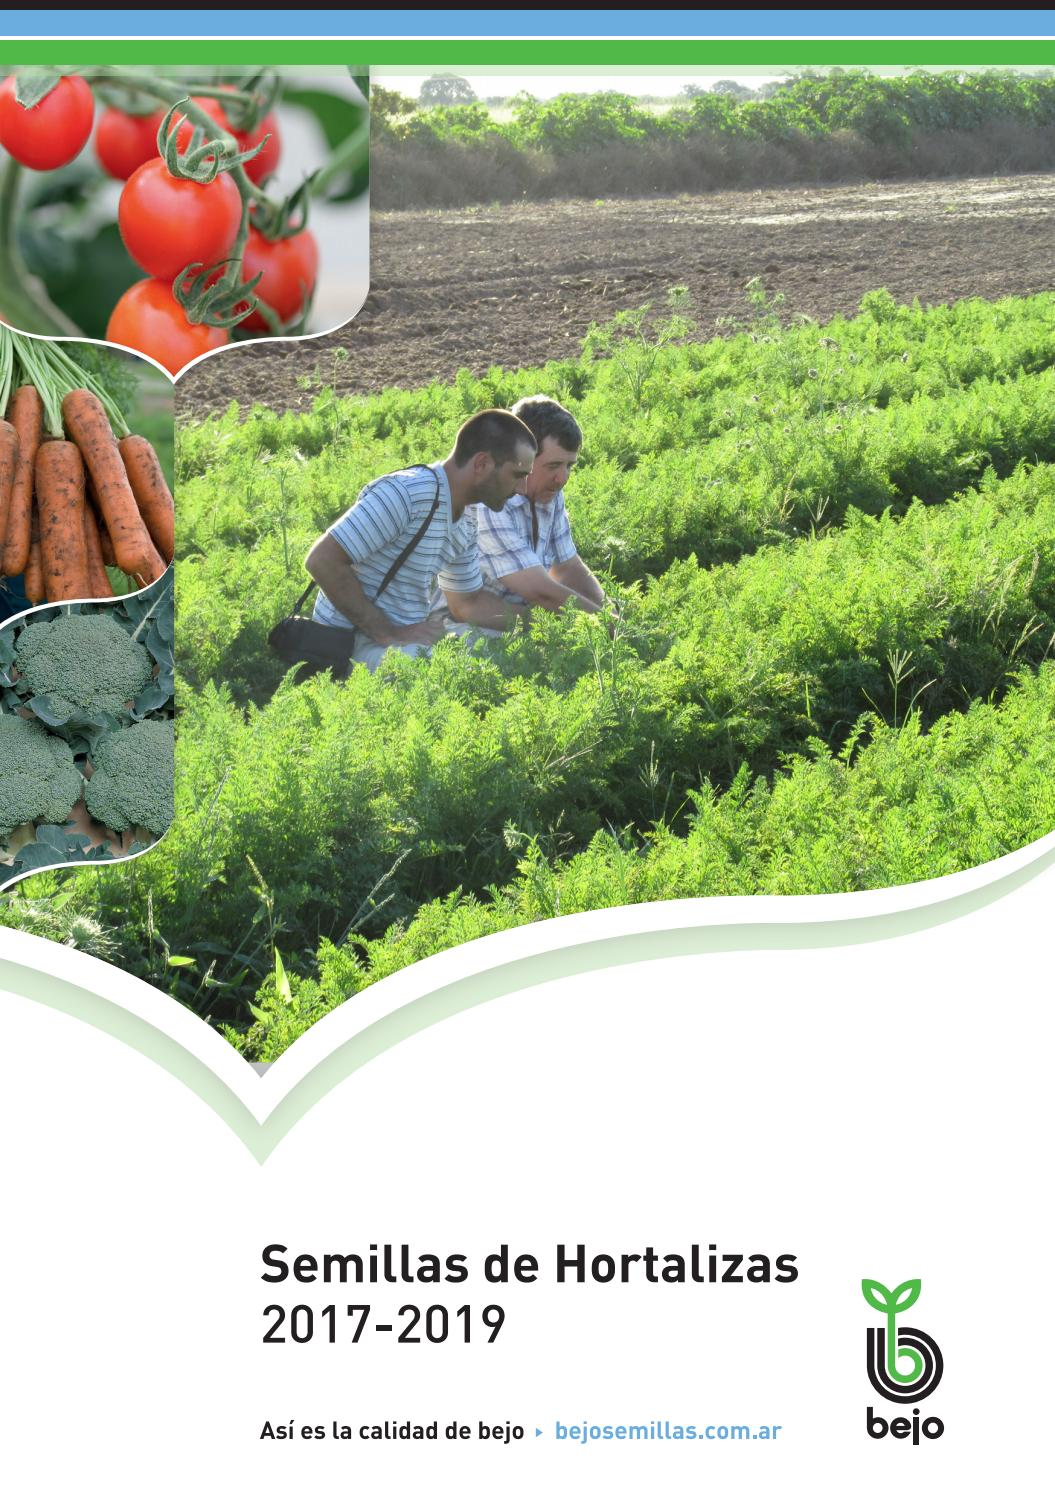 Bejo Semillas De Hortalizas By Bejo Zaden Issuu This disease was first recorded in india in 1972, and later in brazil in 1998, where its distribution is currently restricted to the. semillas de hortalizas by bejo zaden